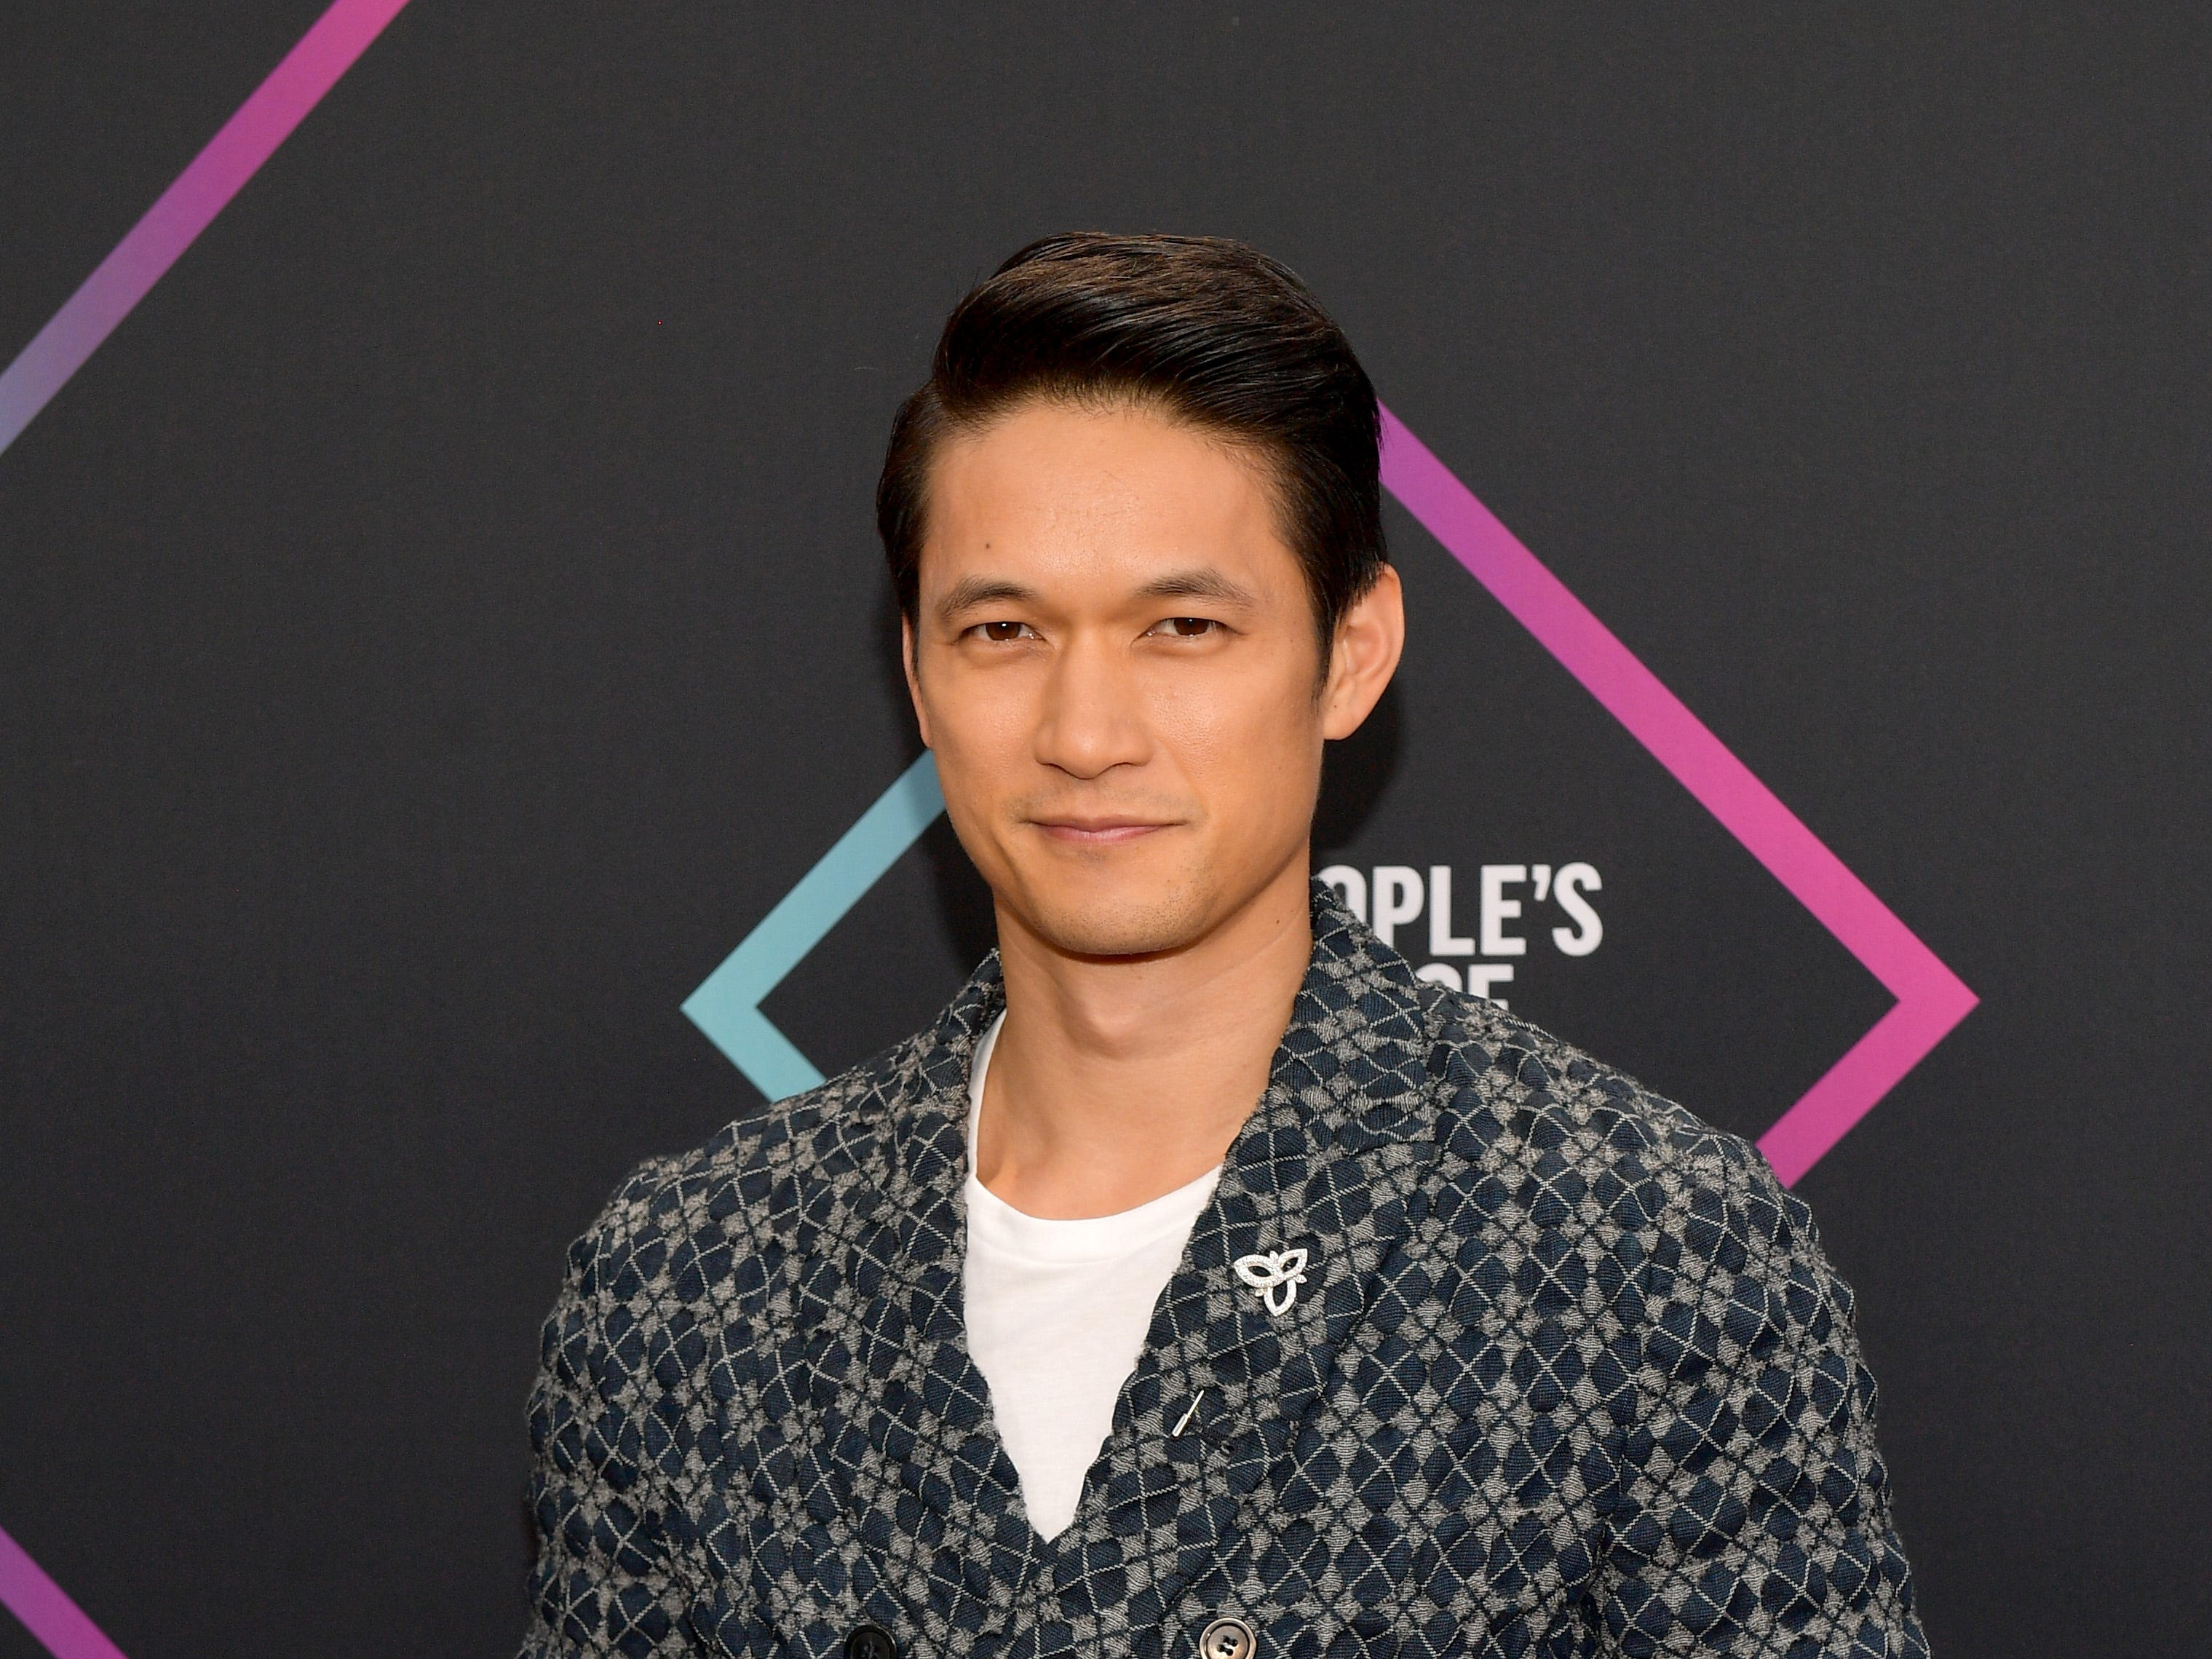 SANTA MONICA, CA - NOVEMBER 11:  Harry Shum Jr. attends the People's Choice Awards 2018 at Barker Hangar on November 11, 2018 in Santa Monica, California.  (Photo by Matt Winkelmeyer/Getty Images) ORG XMIT: 775237965 ORIG FILE ID: 1060370434